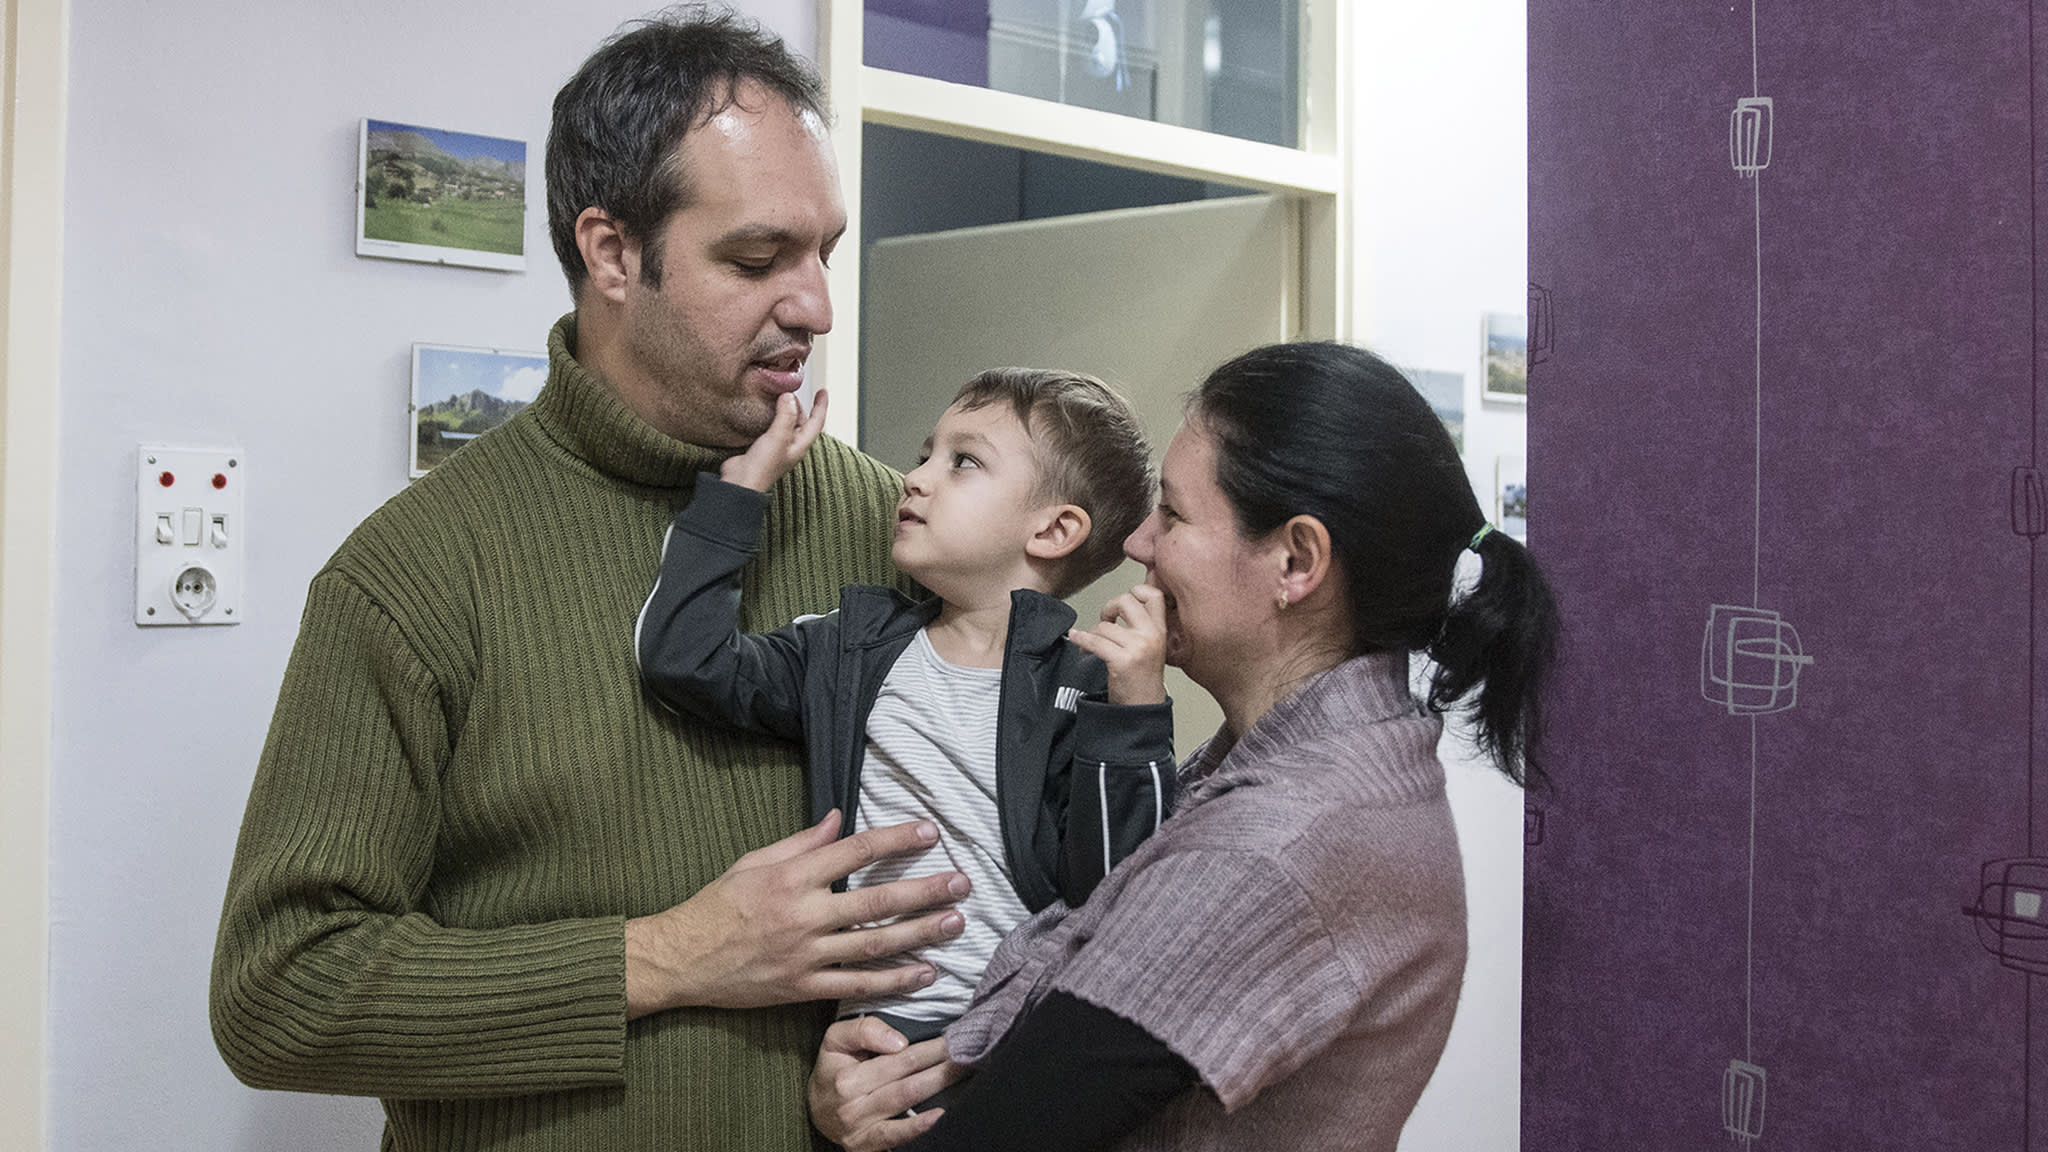 Too cold to live in: how families in Macedonia are rebuilding their homes